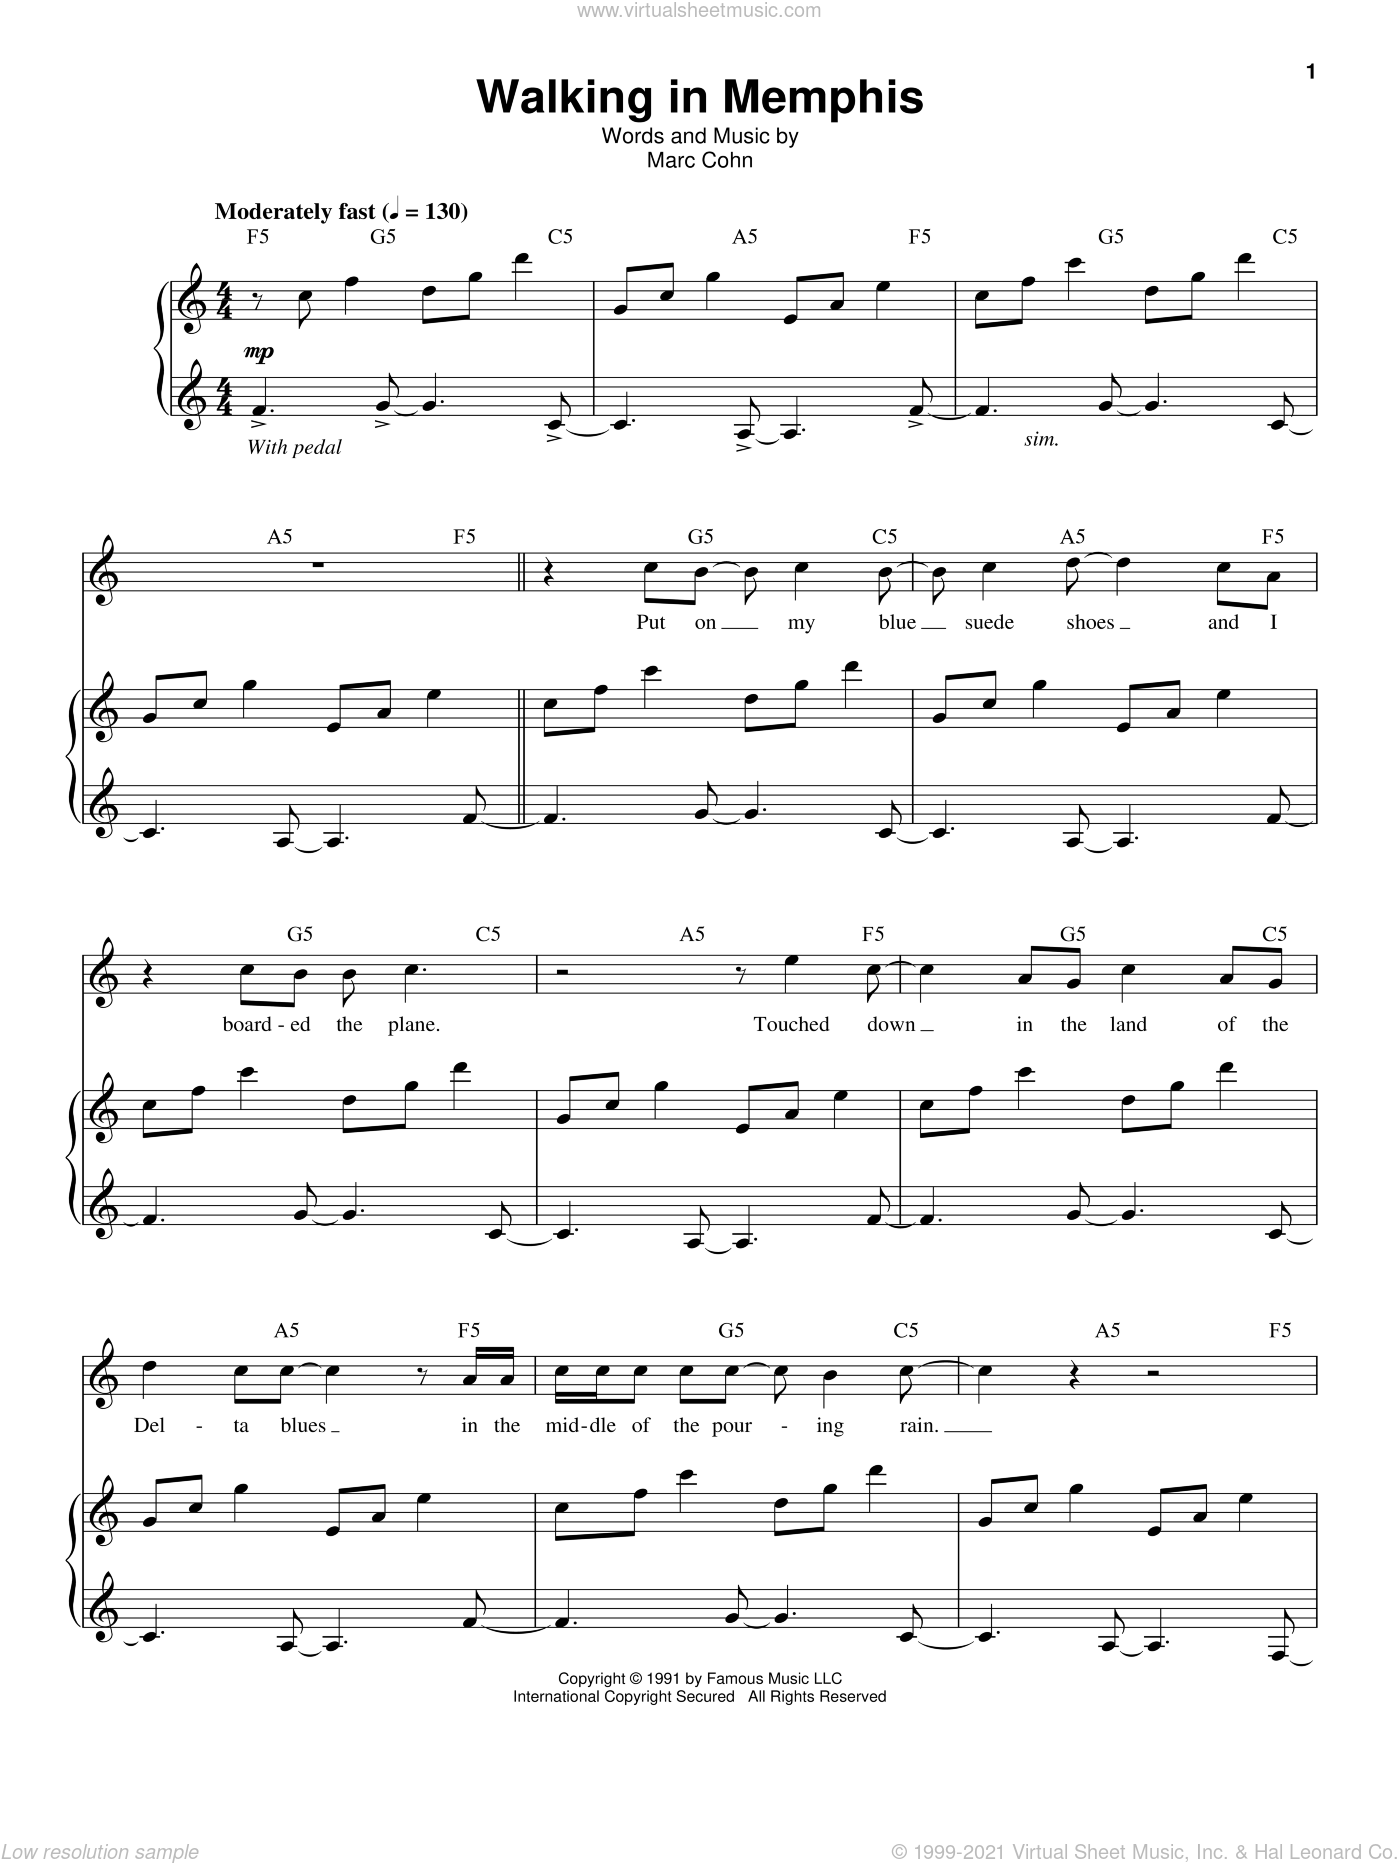 Walking In Memphis sheet music for voice and piano by Marc Cohn, intermediate skill level